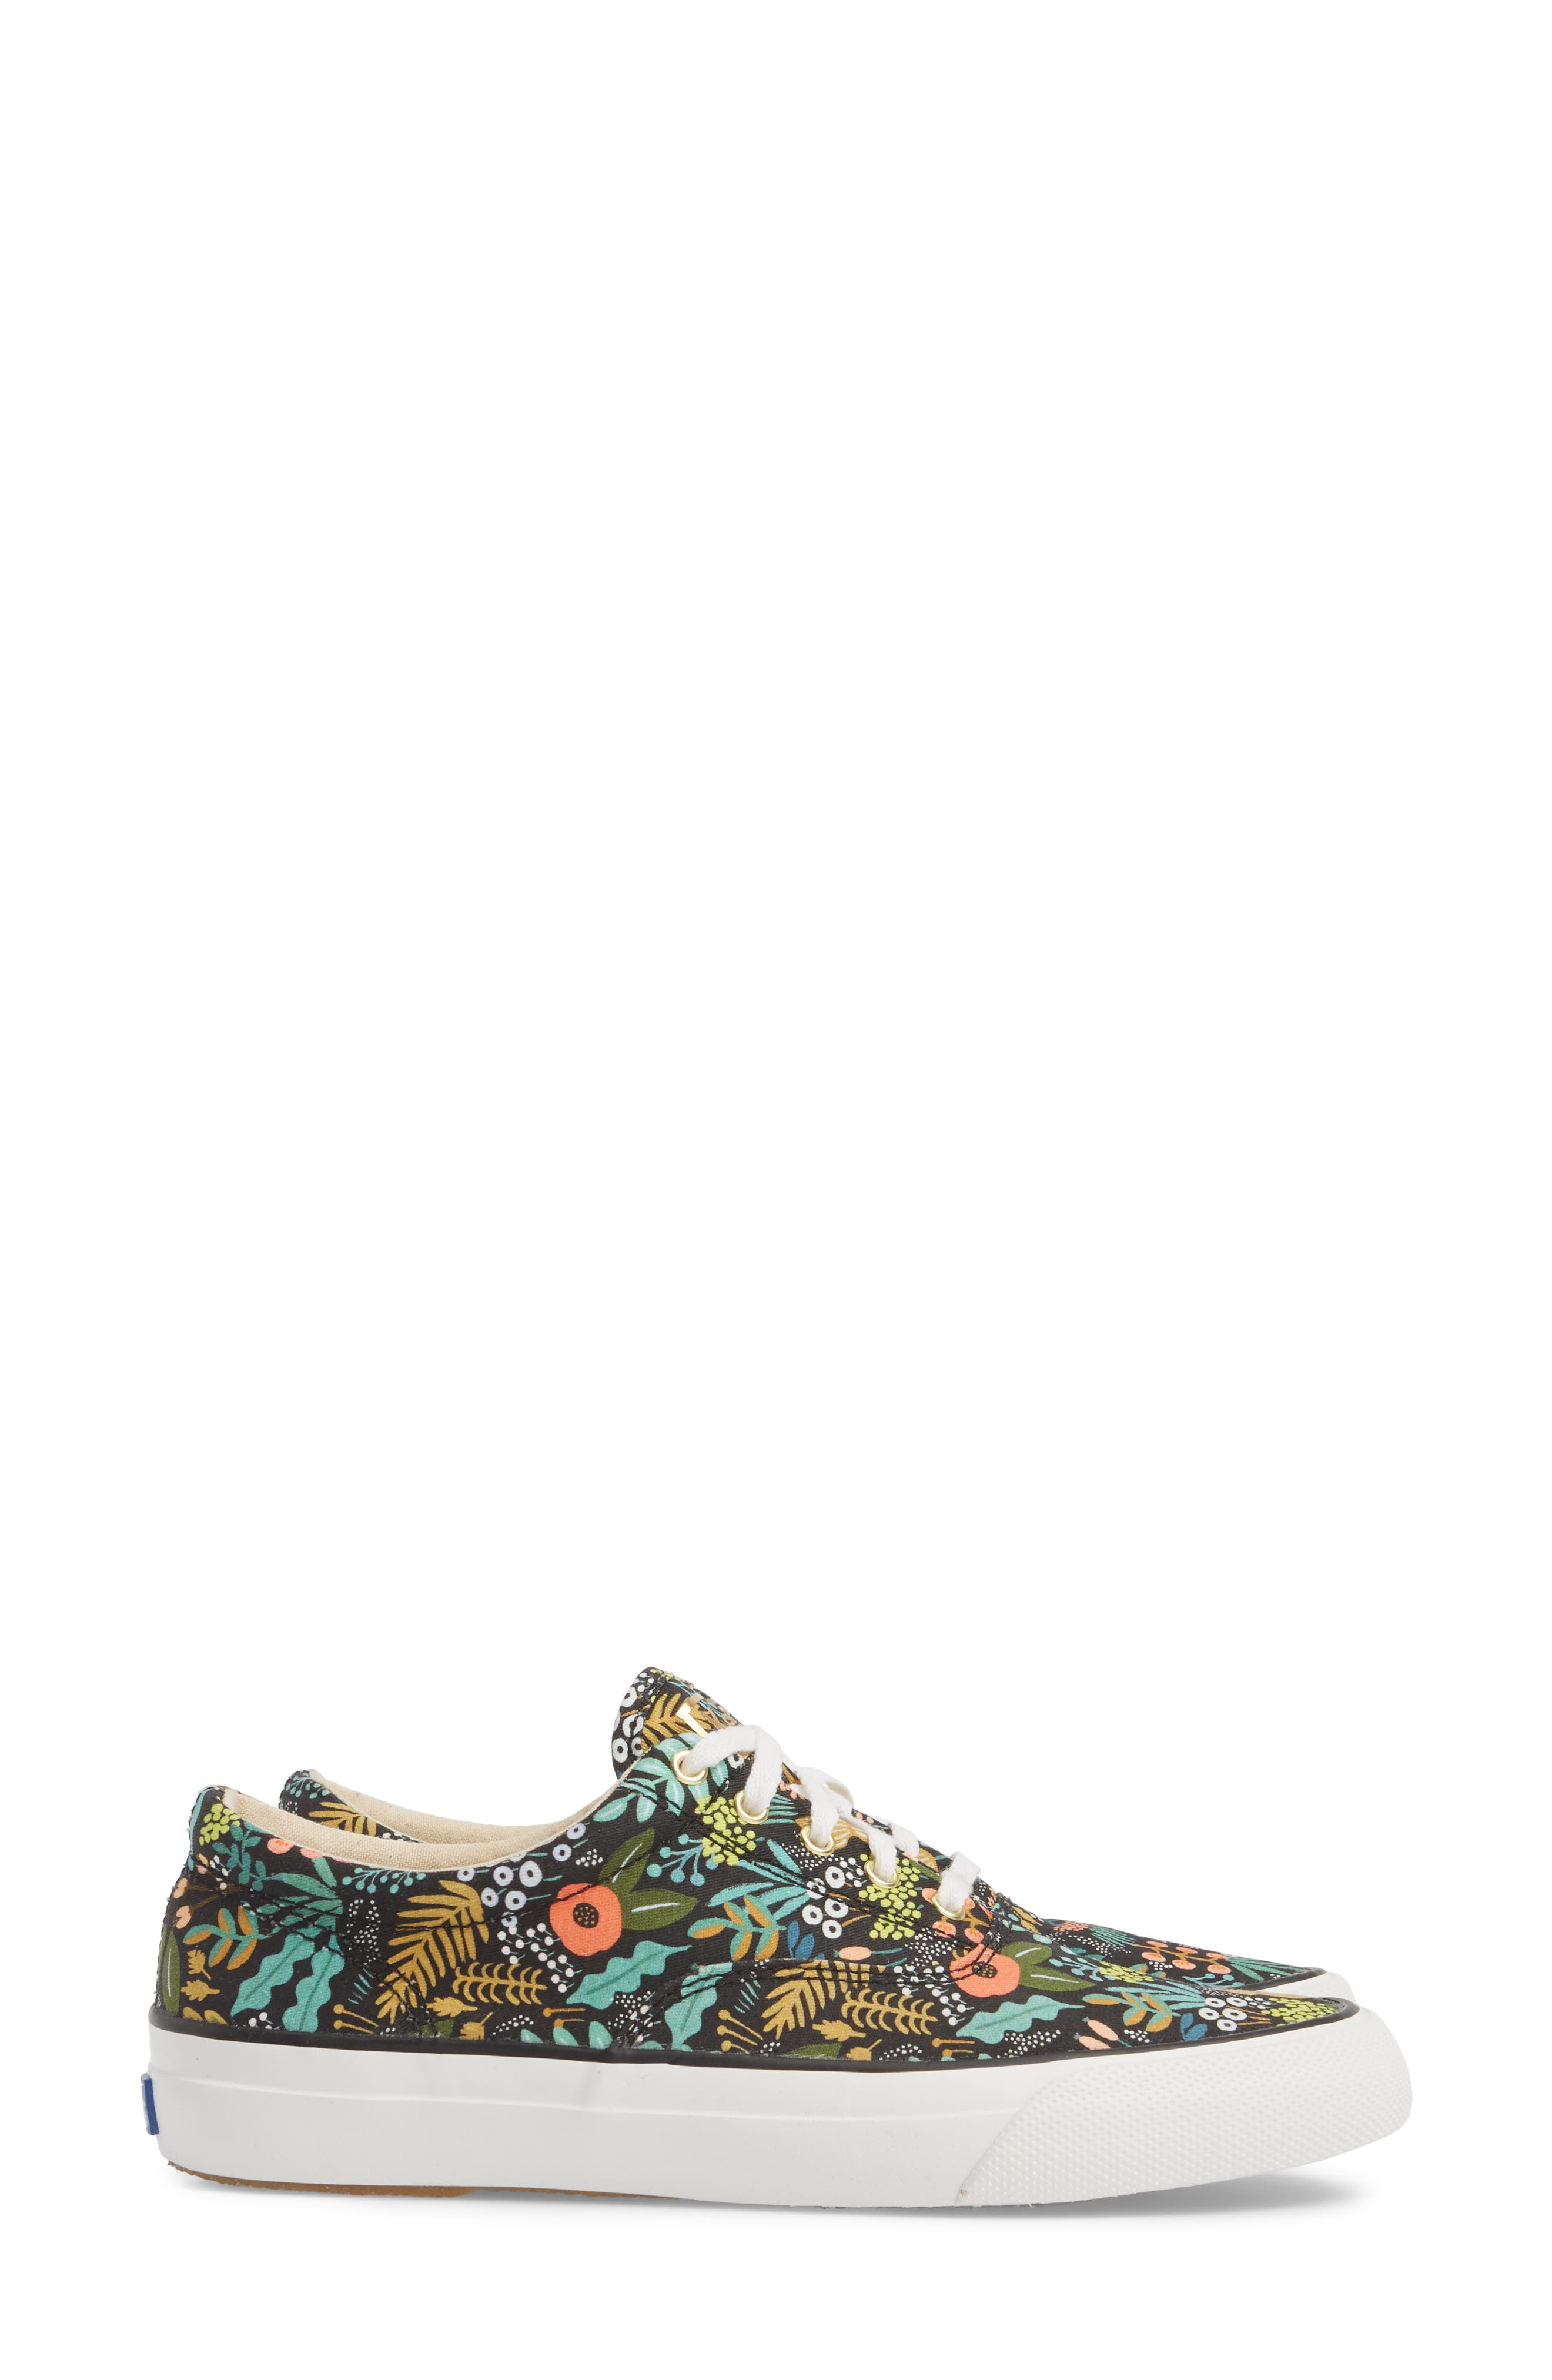 KEDS<SUP>®</SUP>, x Rifle Paper Co. Anchor Lively Floral Slip-On Sneaker, Alternate thumbnail 4, color, BLACK